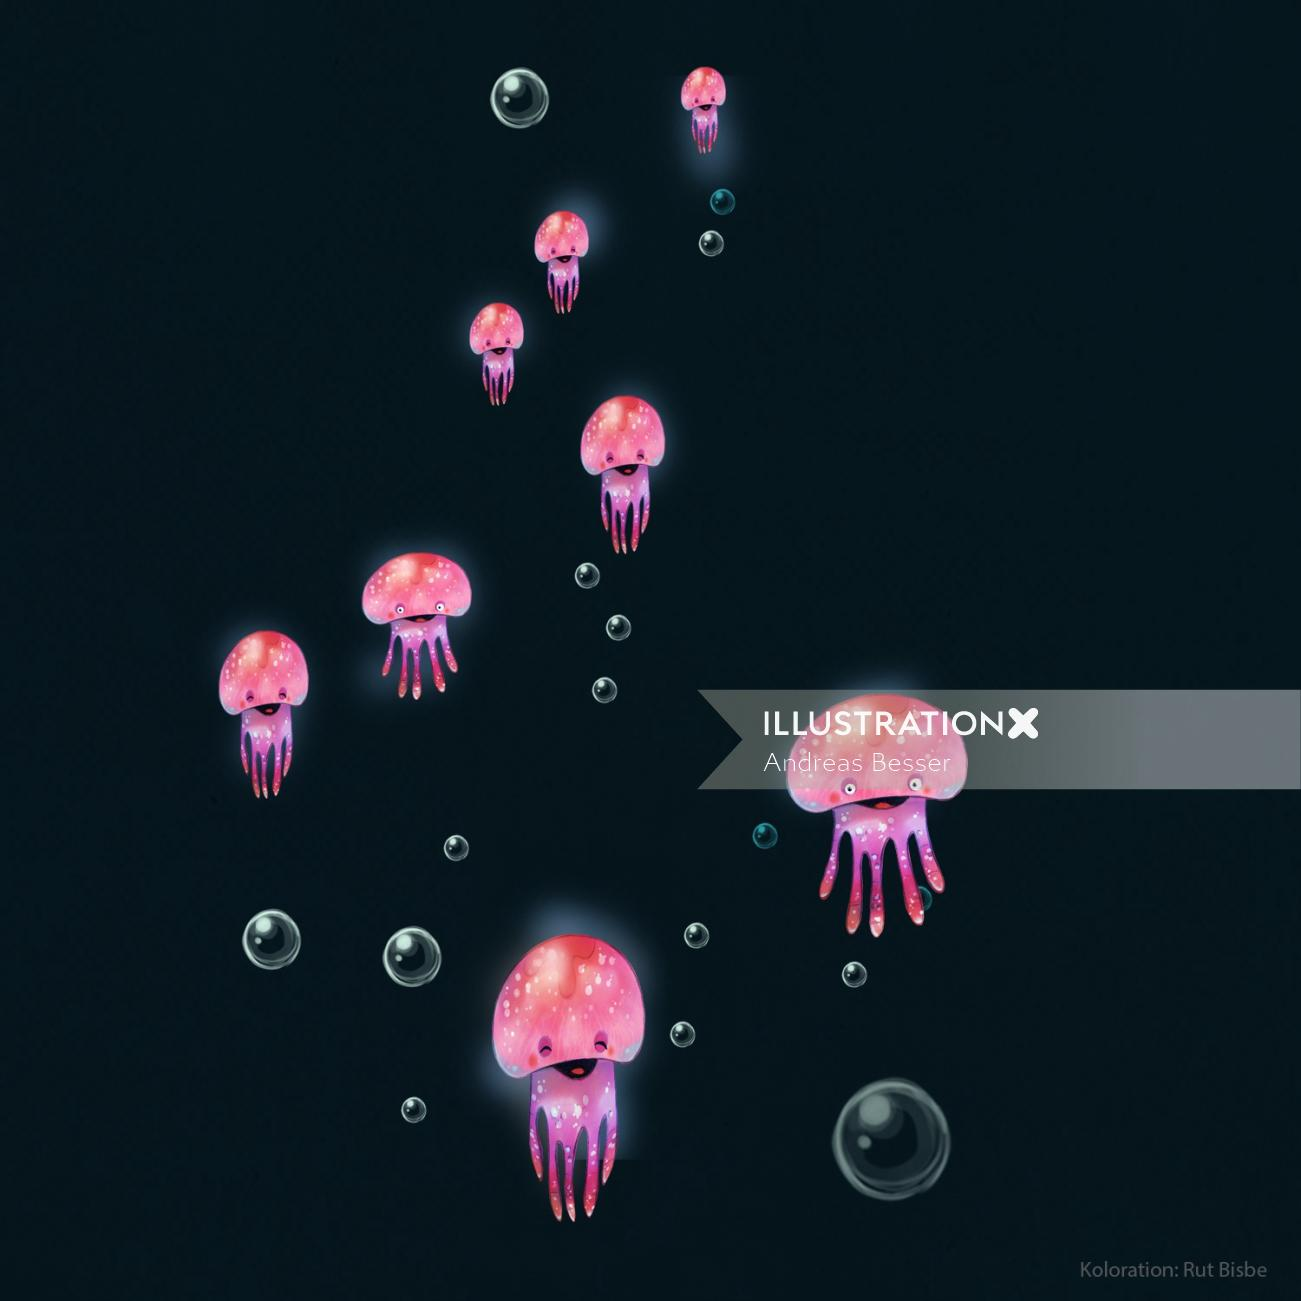 Colorful illustration of jelly fish